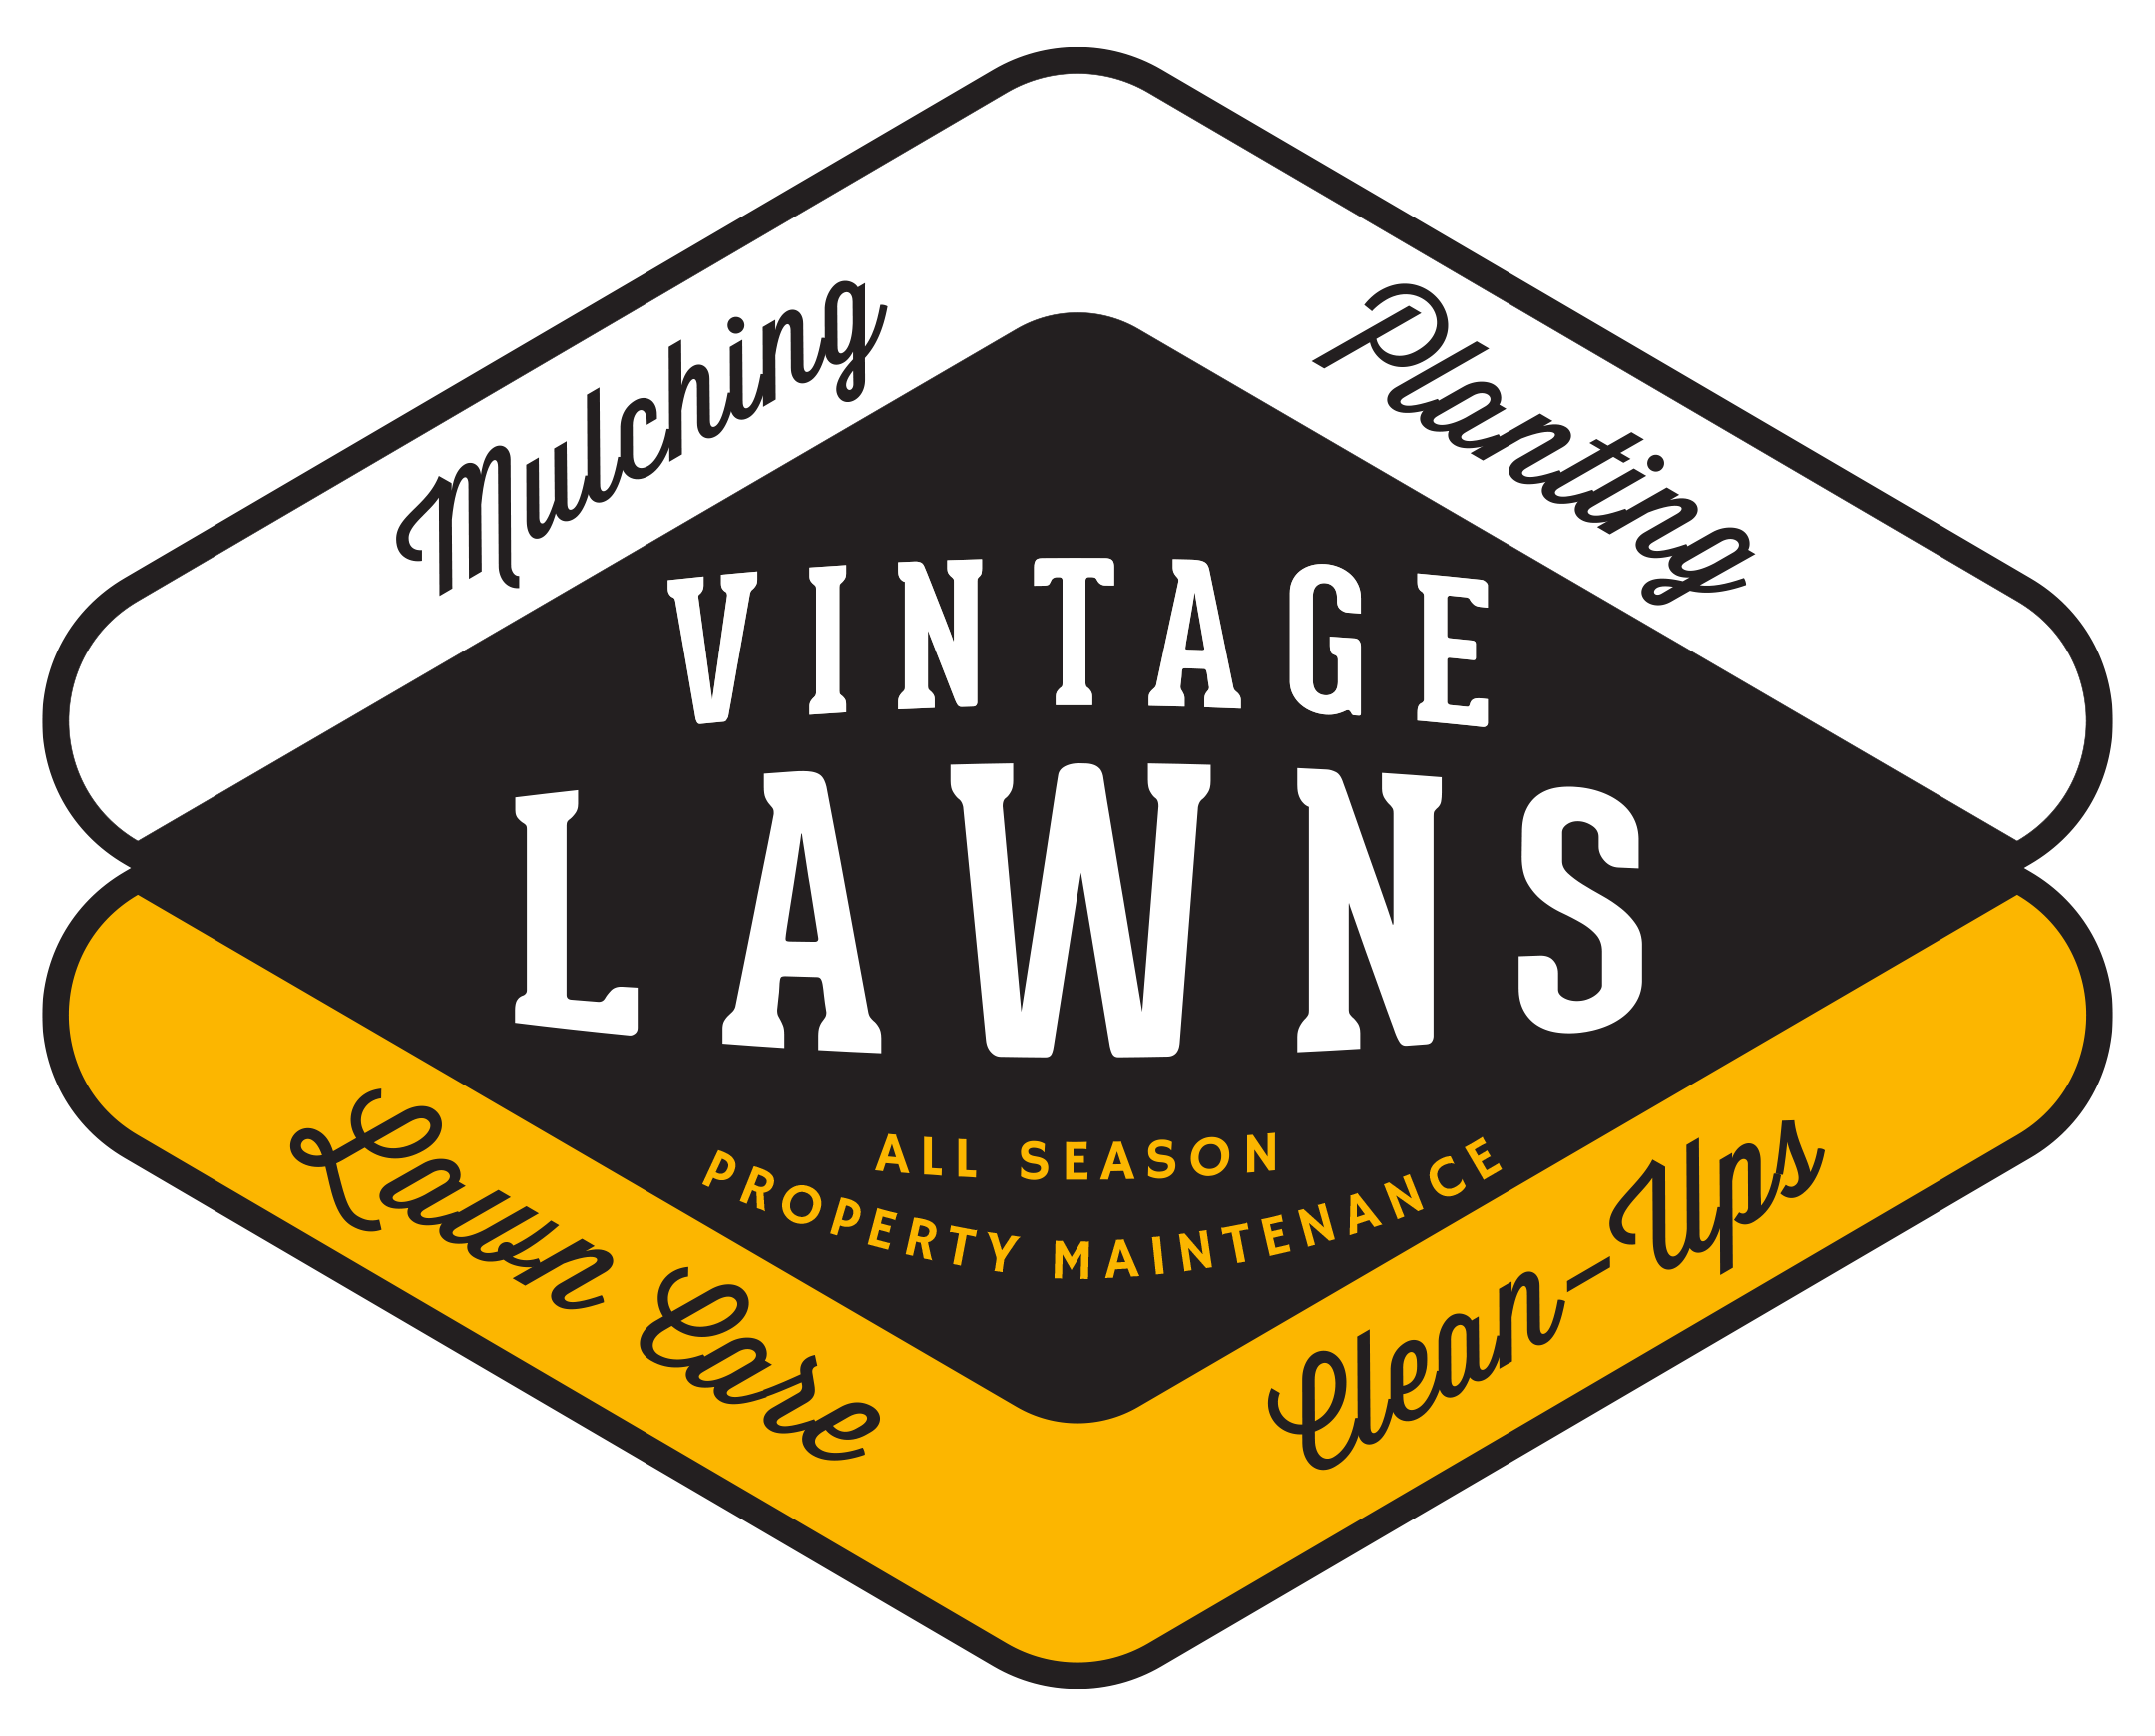 No Background Vintage Lawns